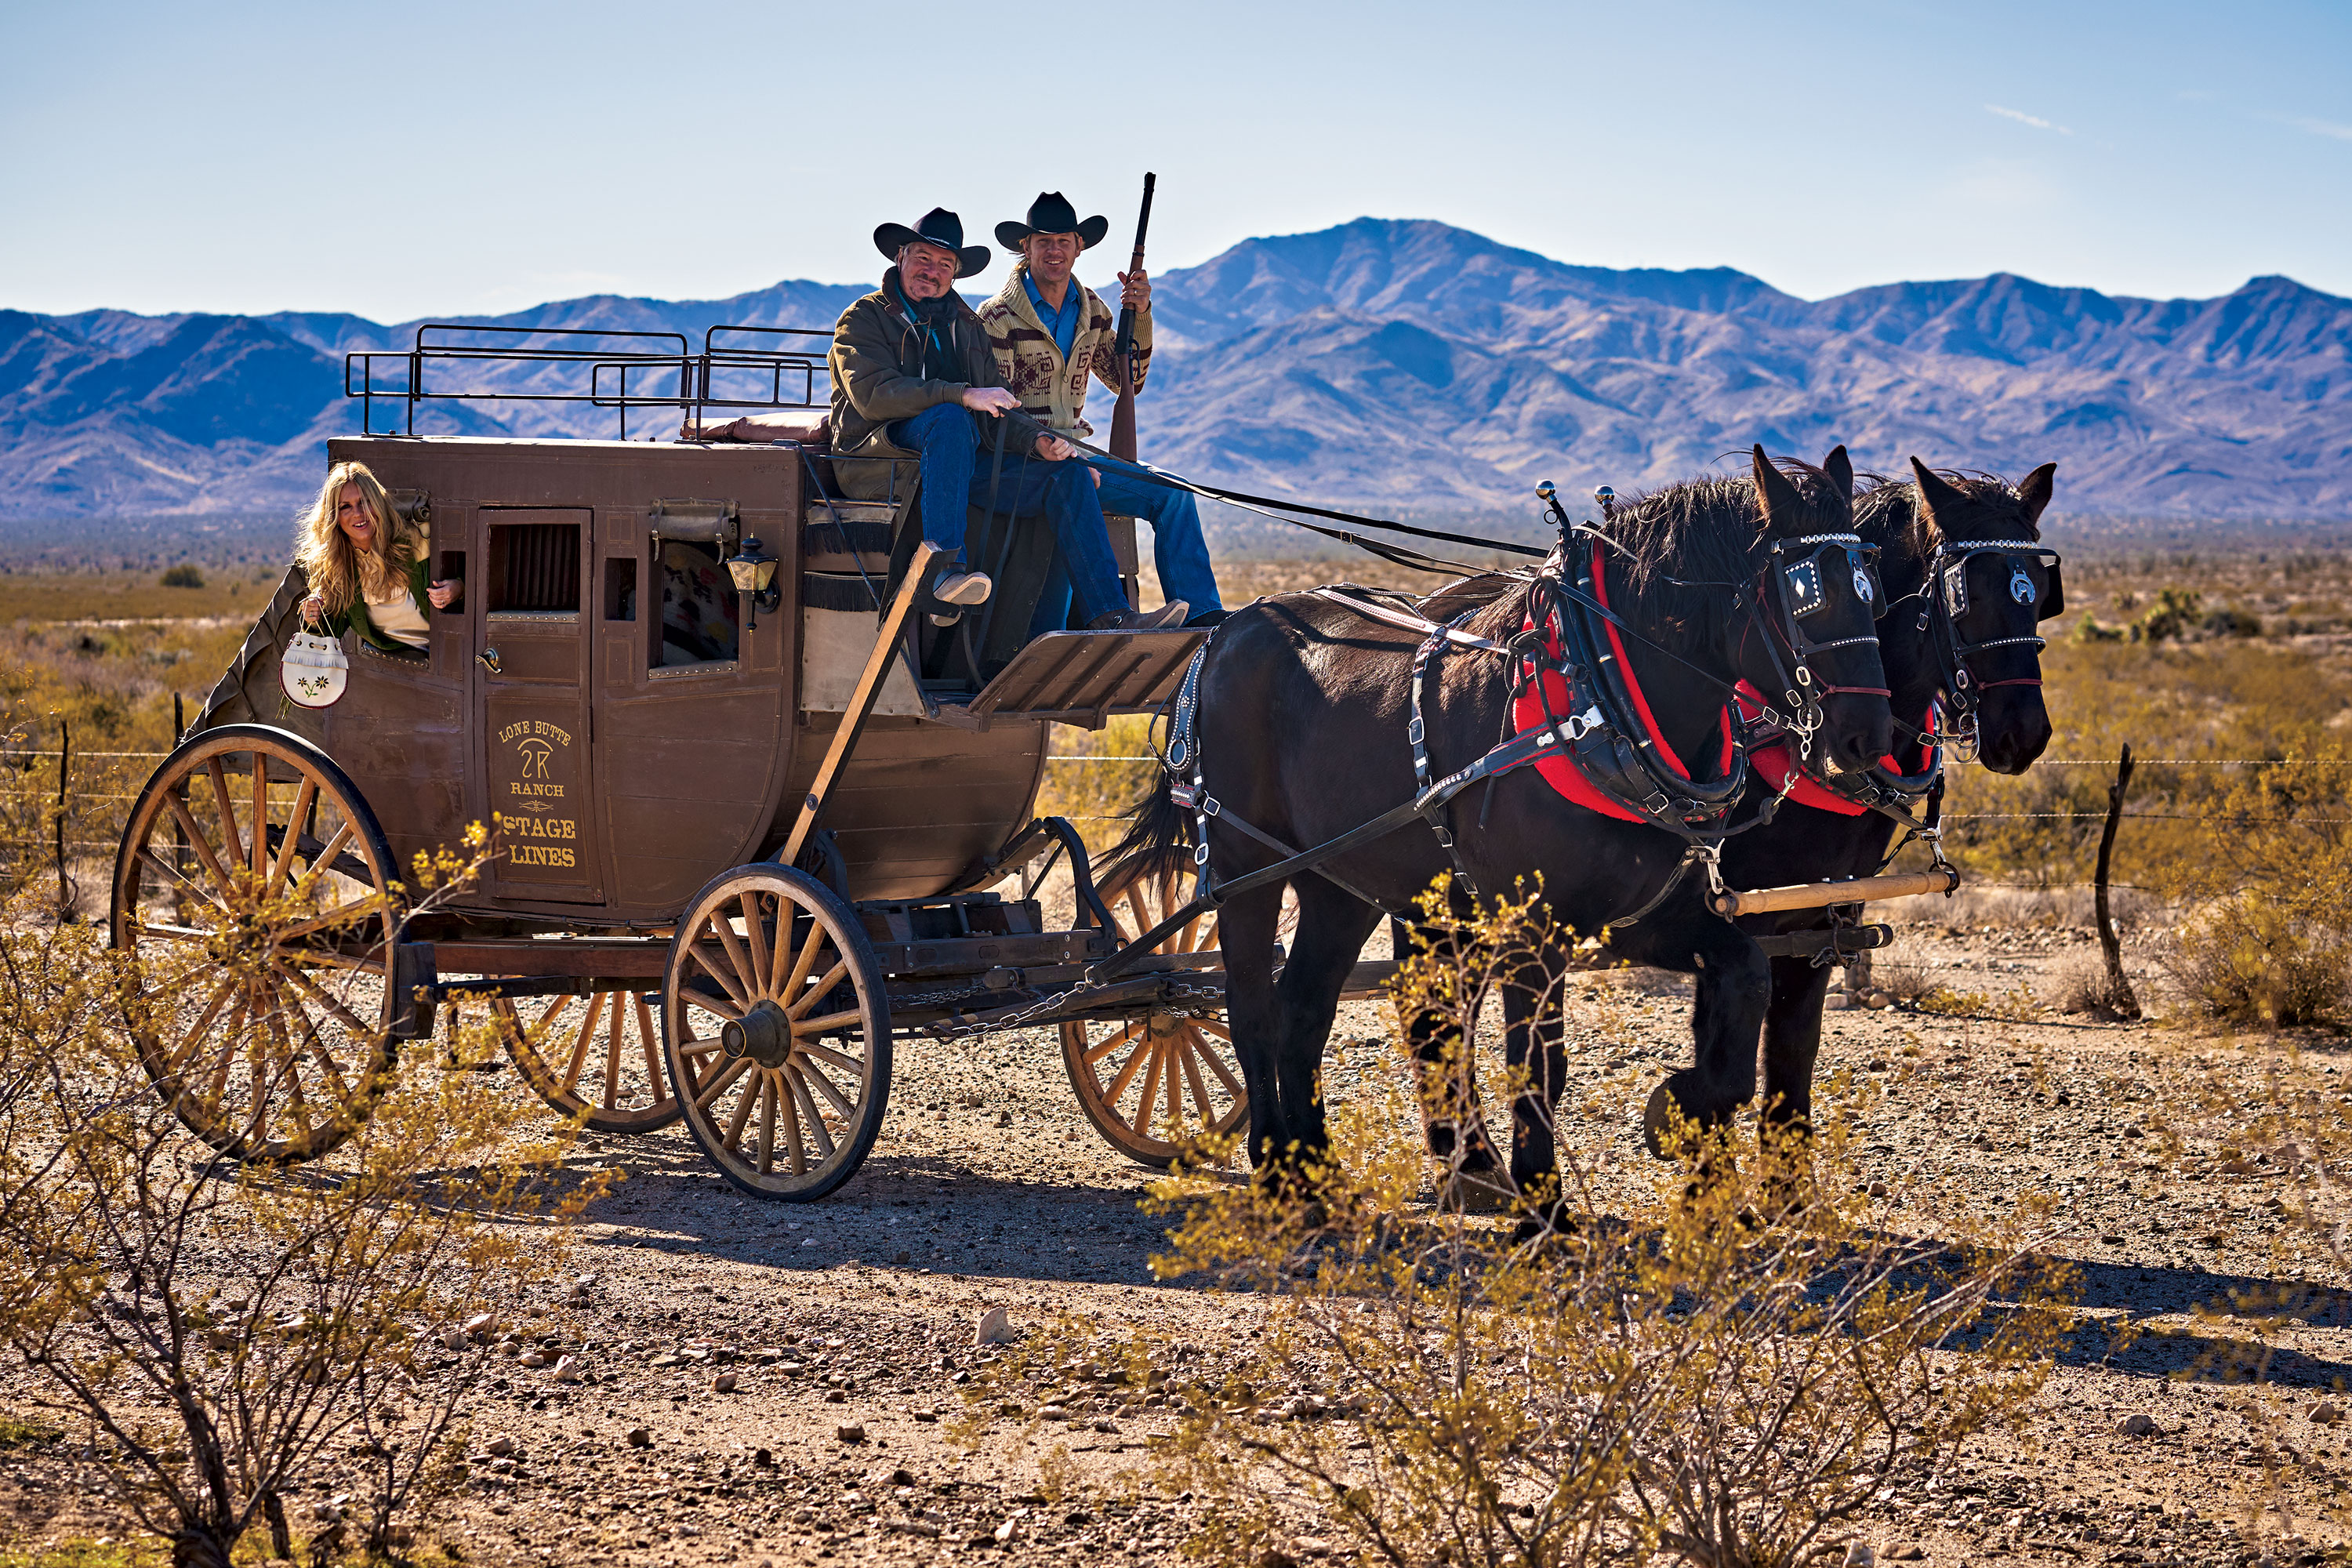 2020 Coral House Christmas Horse Wagon Ride 52 Weekend Adventures 2020 Edition   PHOENIX magazine